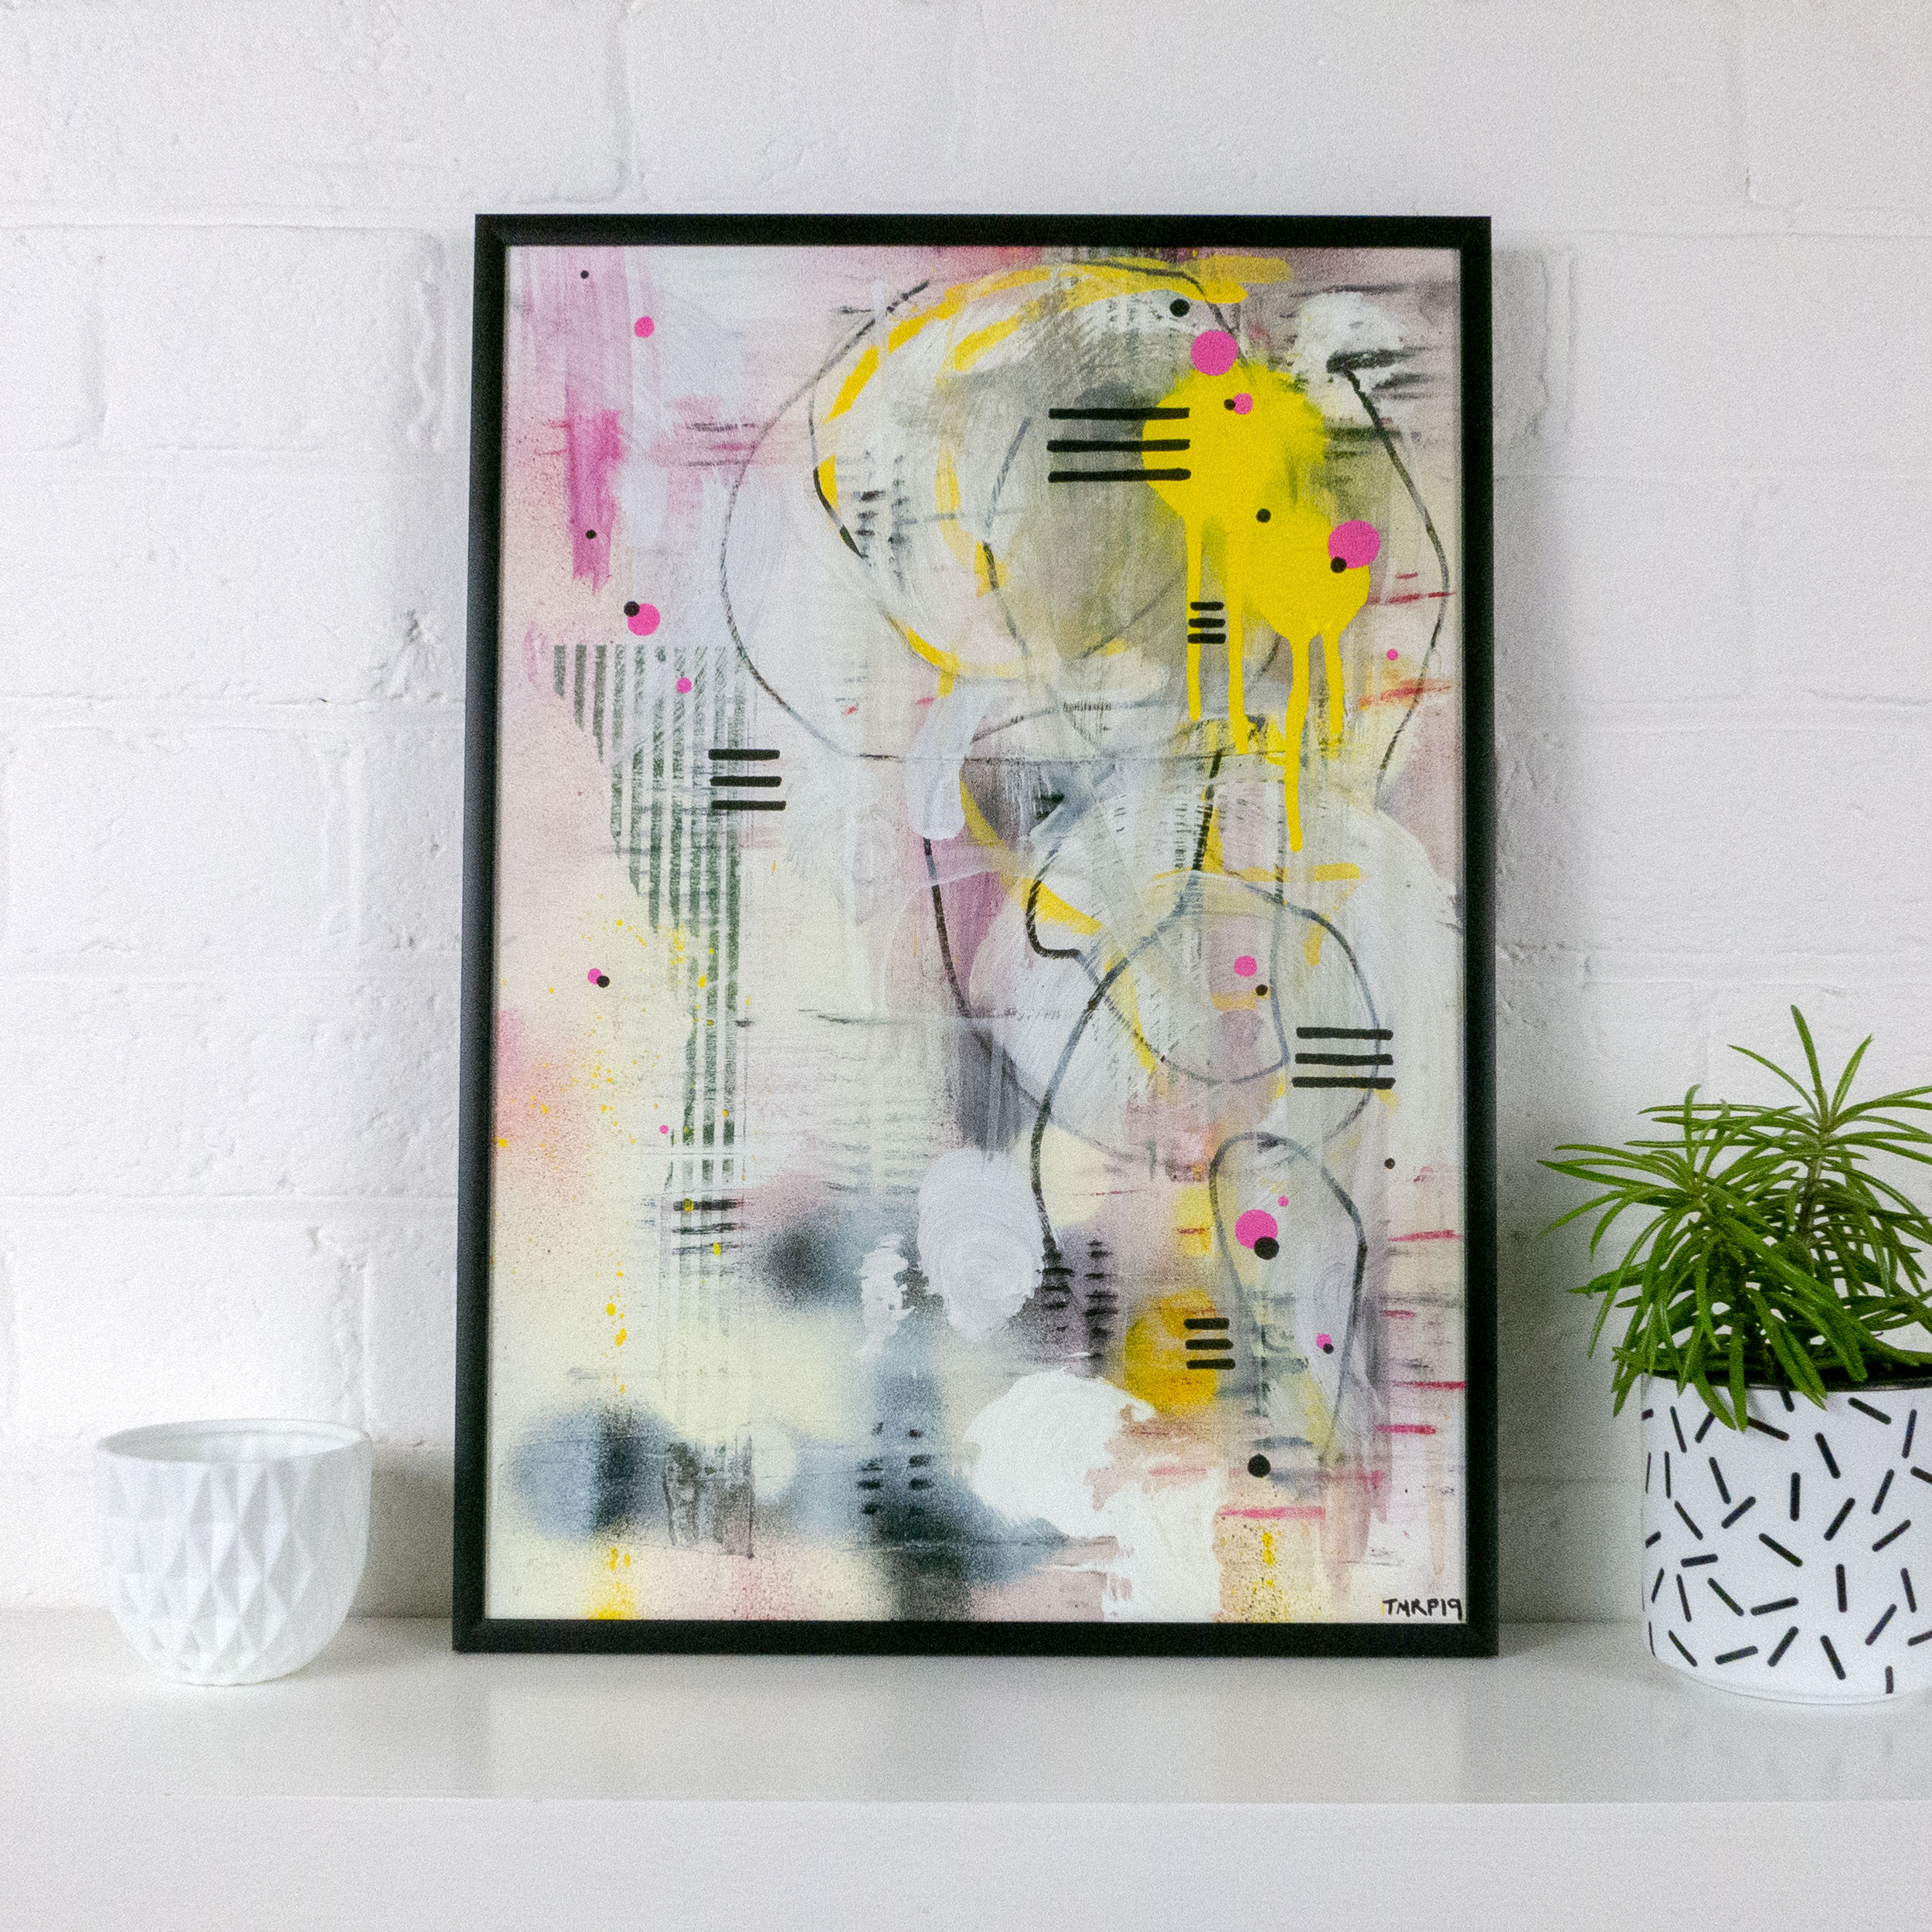 Art - Prints & original artworks